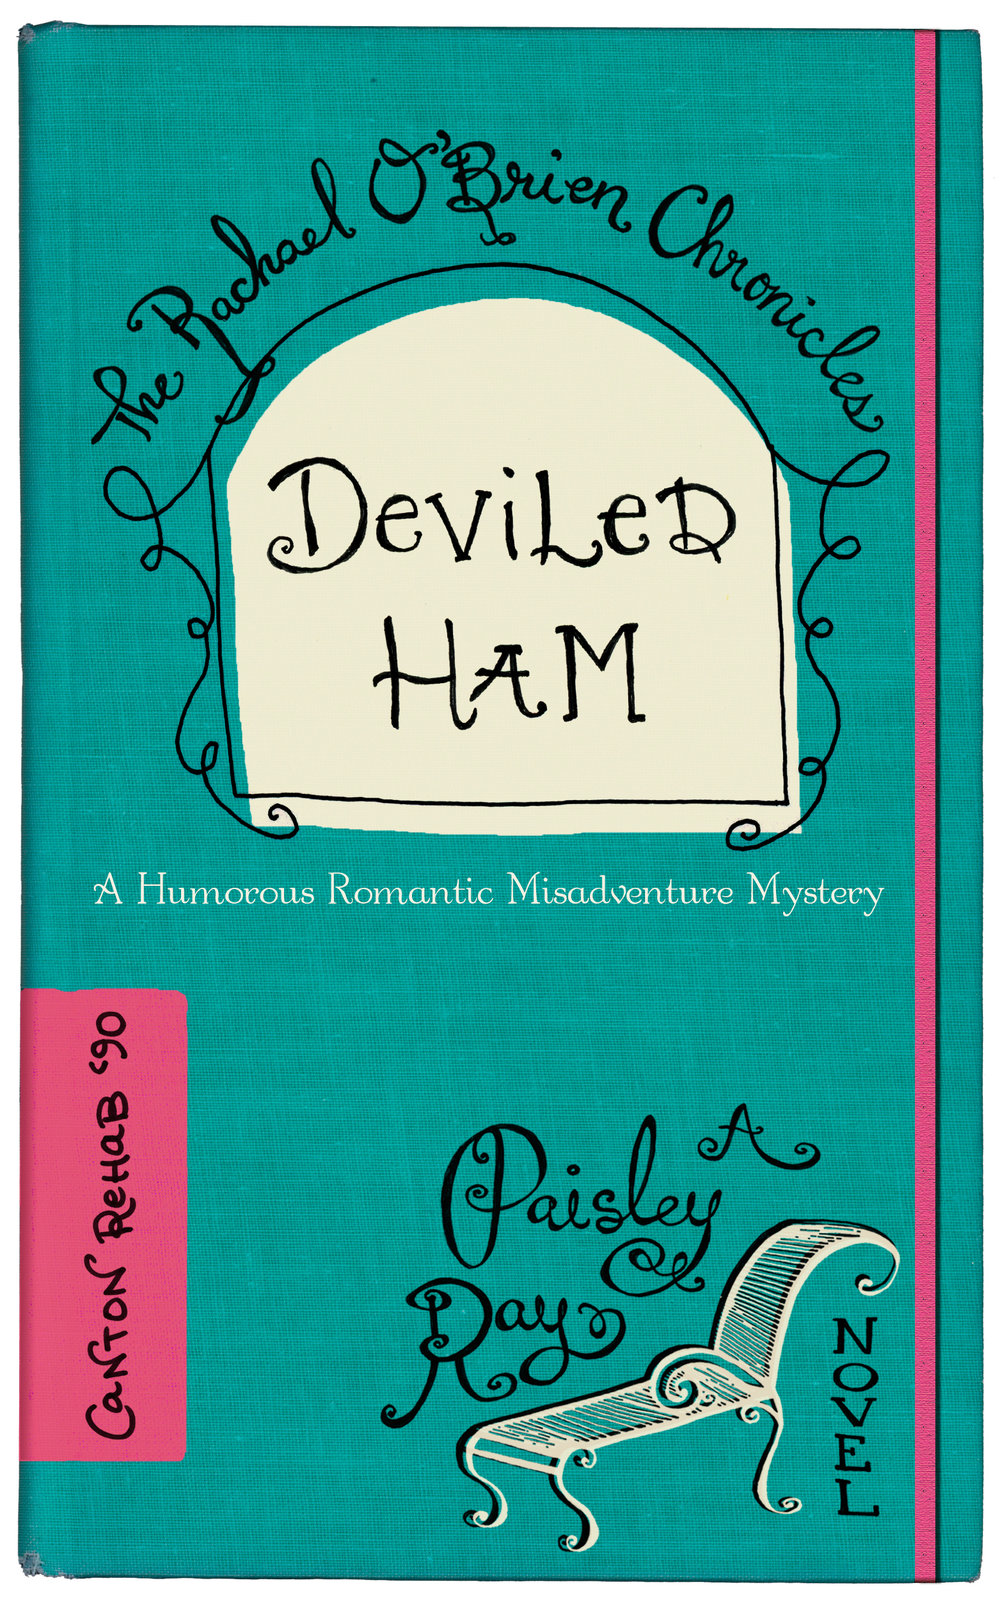 Deviled Ham mystery book